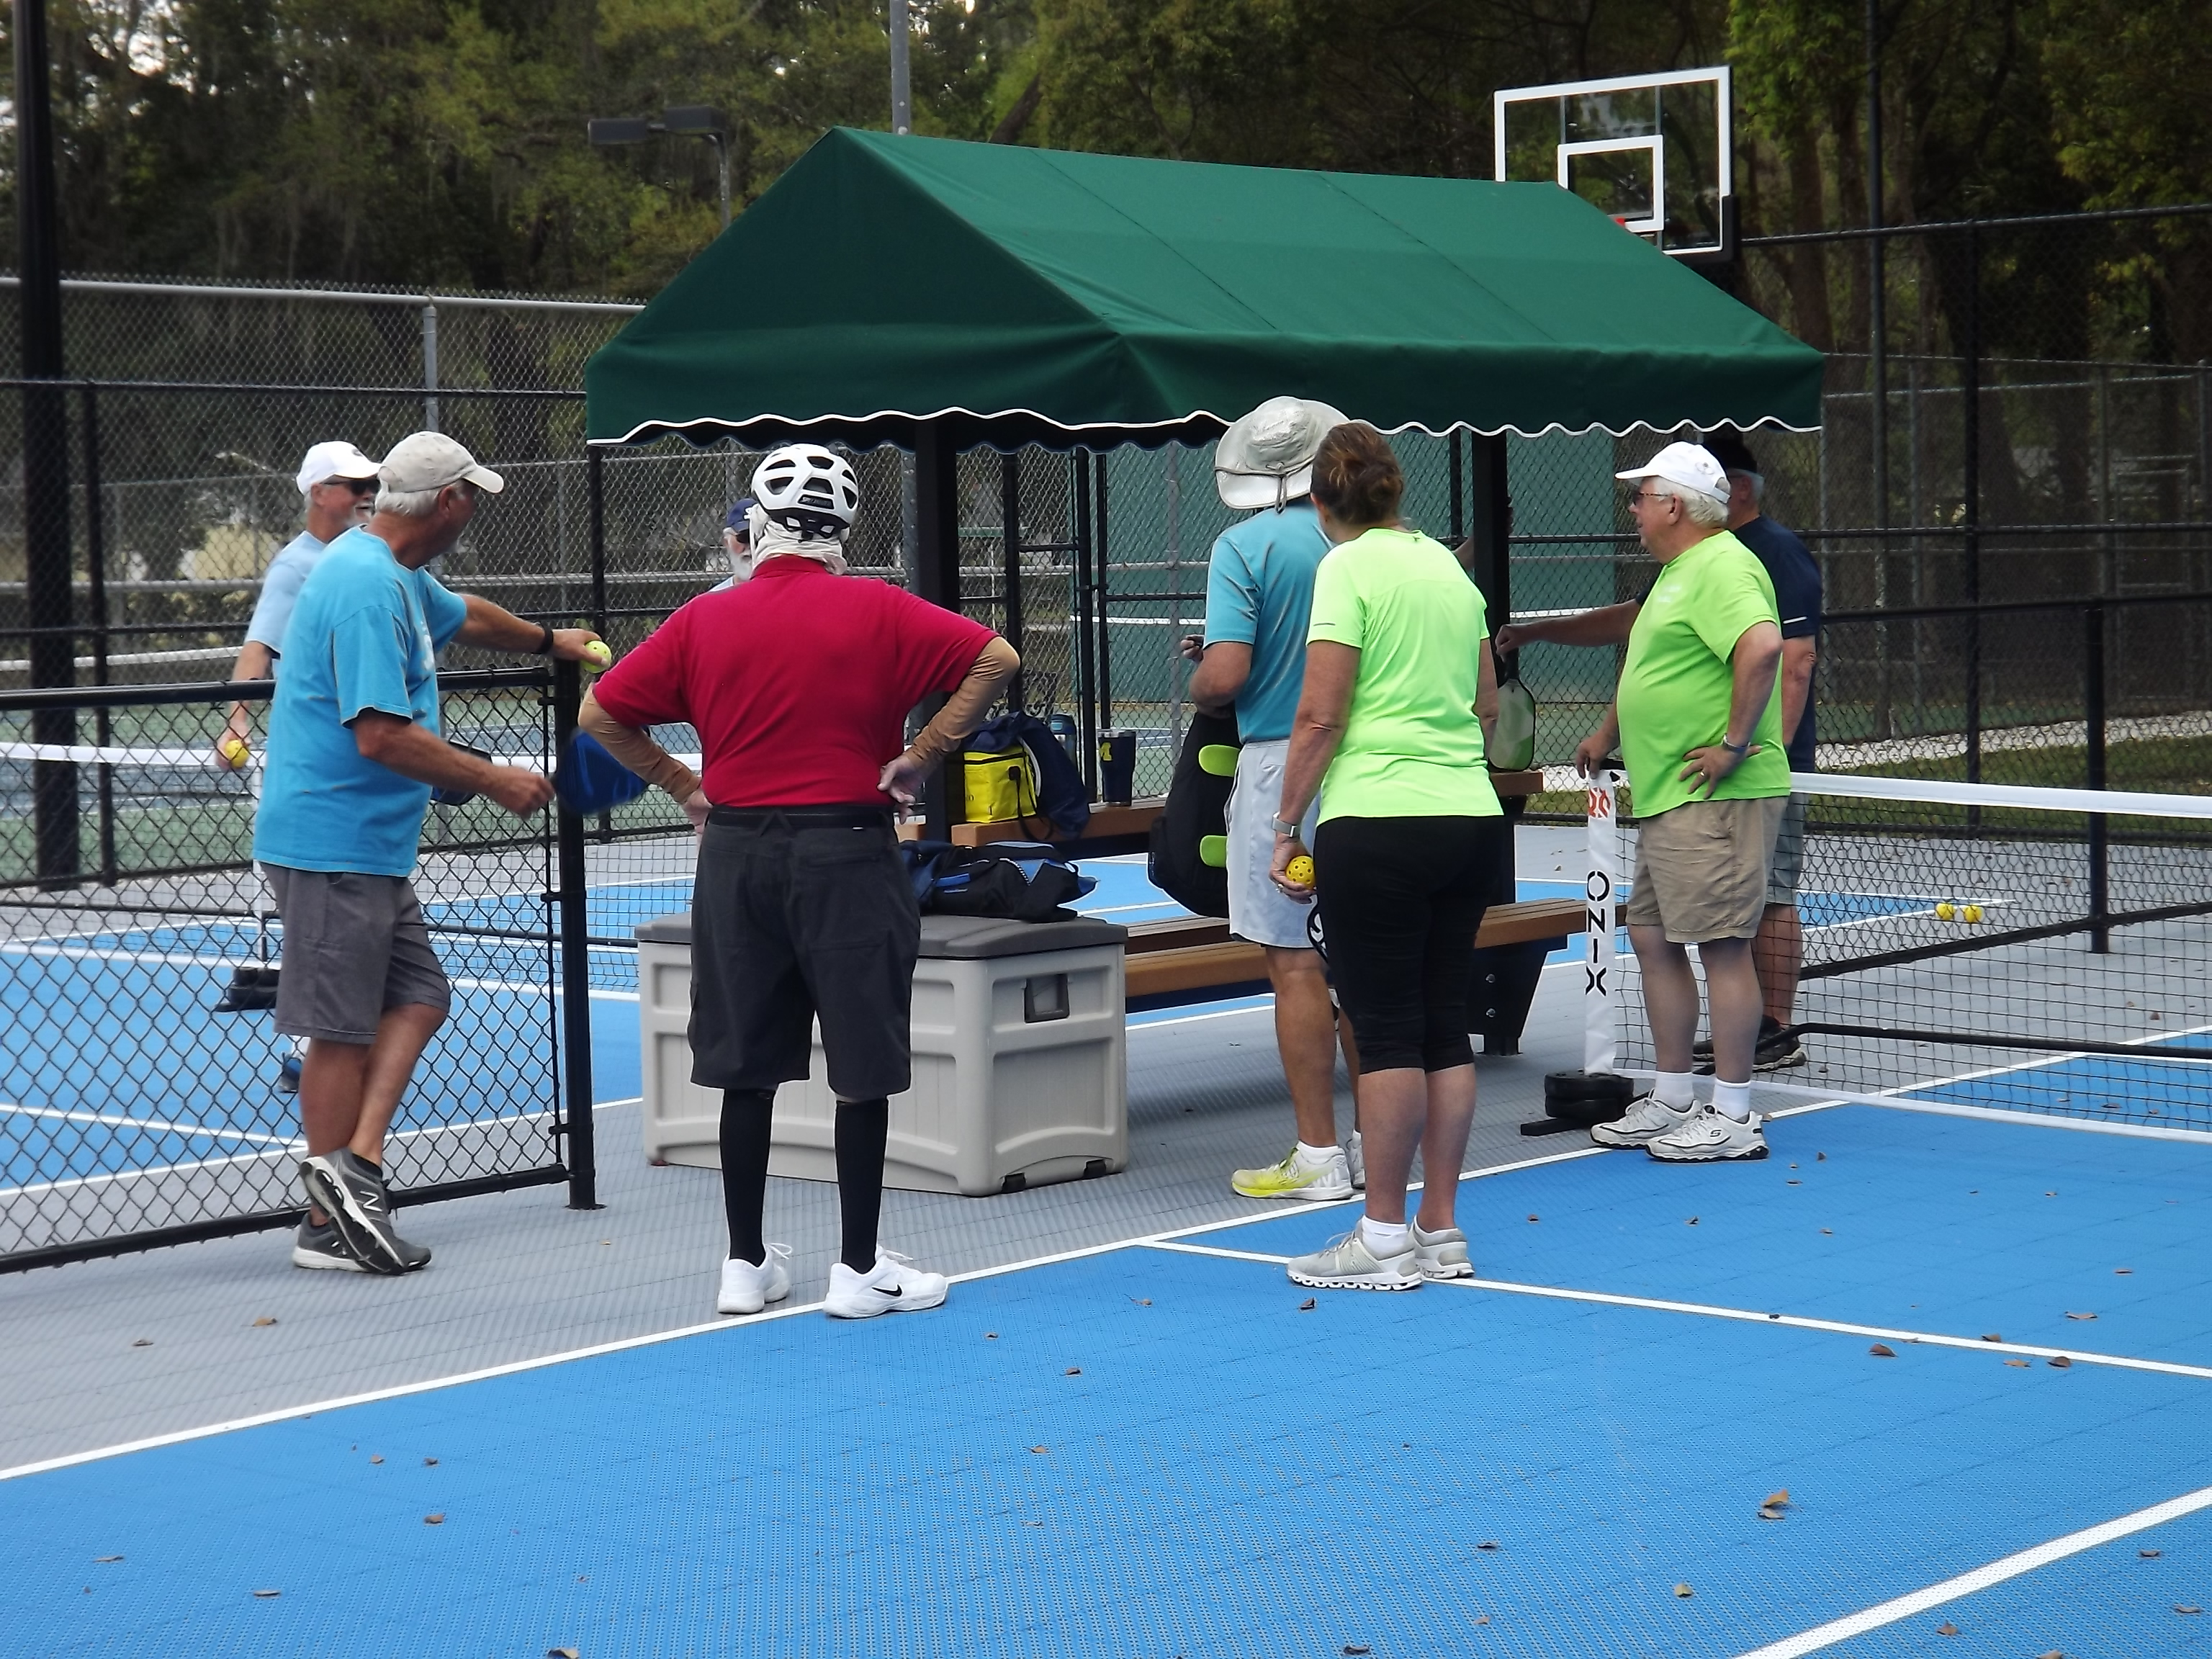 Enthusiasts waiting to play pickle ball